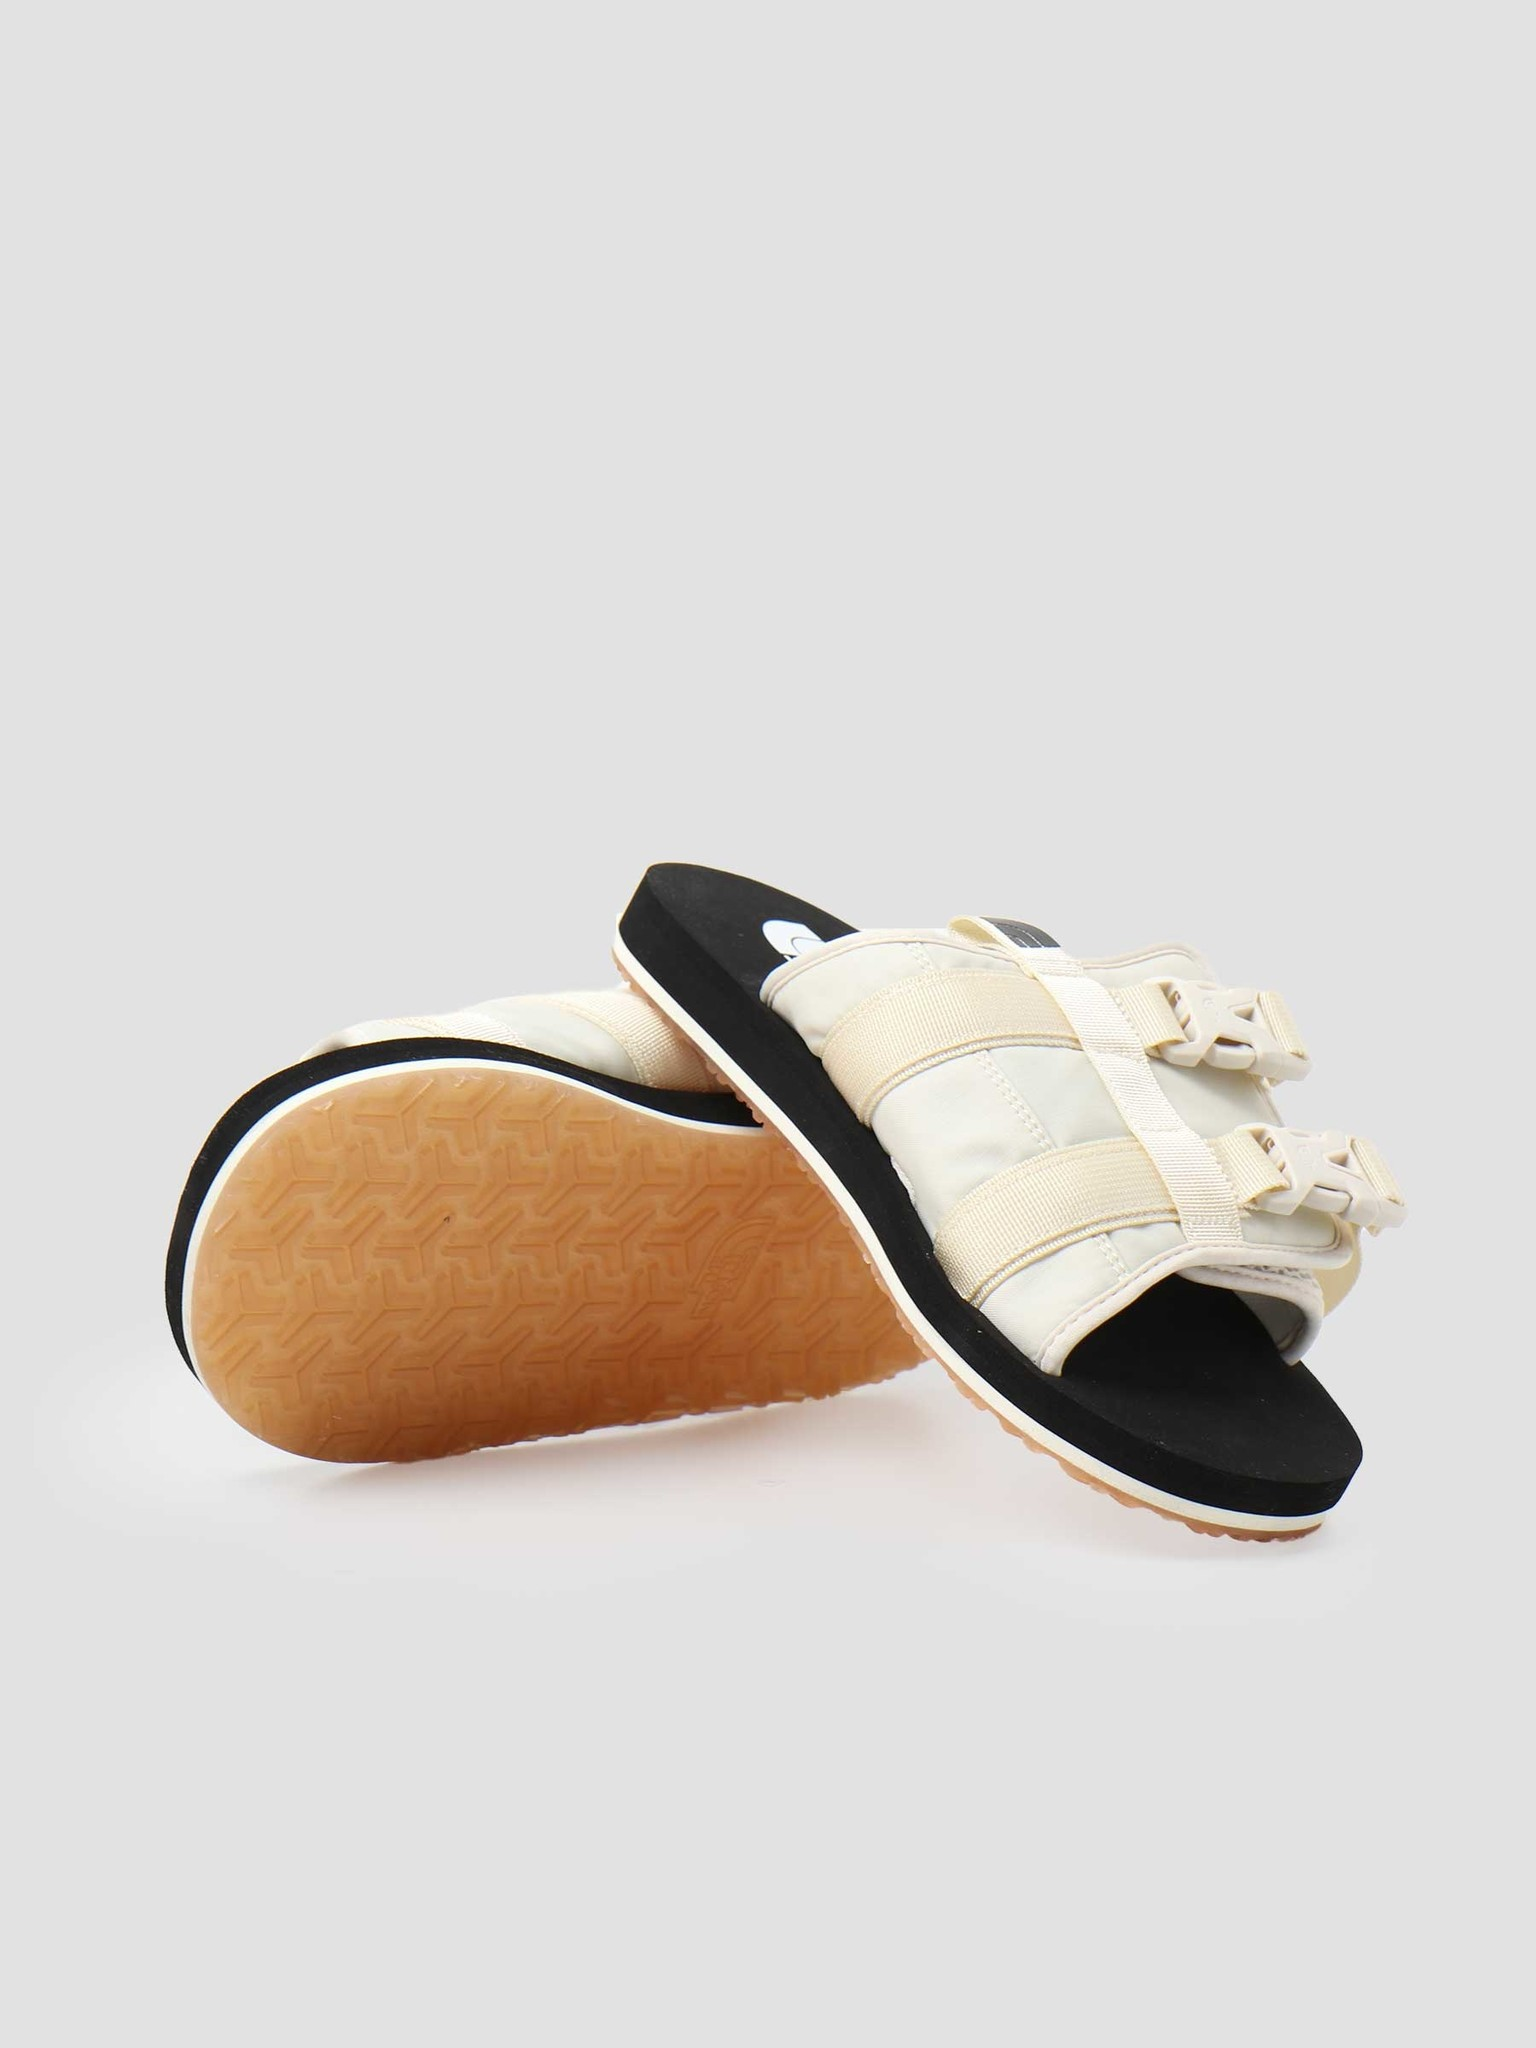 The North Face The North Face EQBC Slide Outdoor Sandal Vintage White Black NF0A46B3L0E